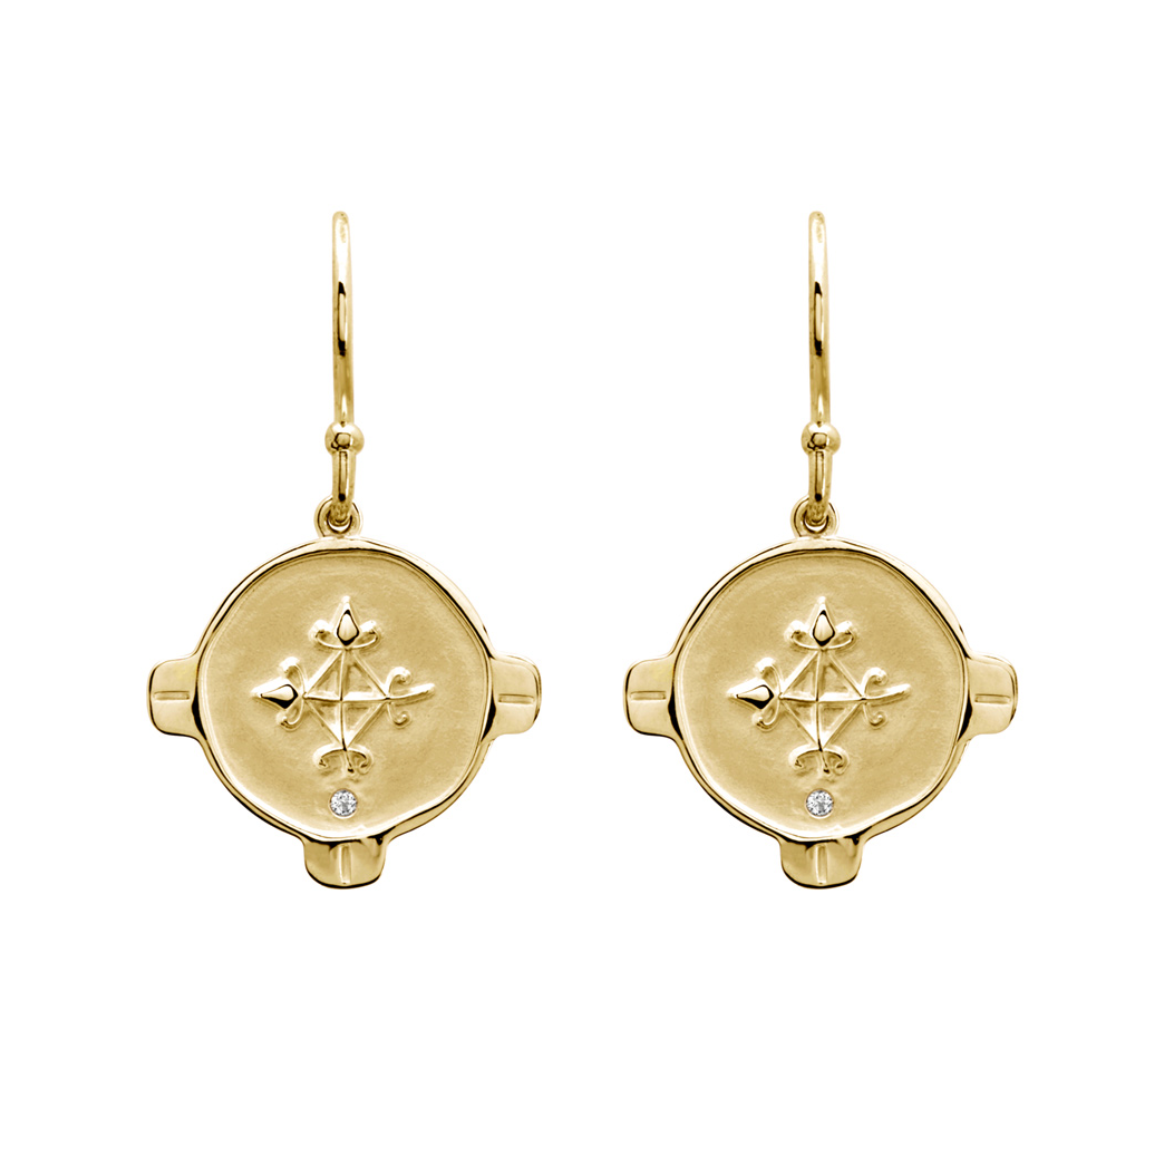 Gold earrings, circle shape with a cross type design in the middle with a small white topaz at the bottom of the circle.